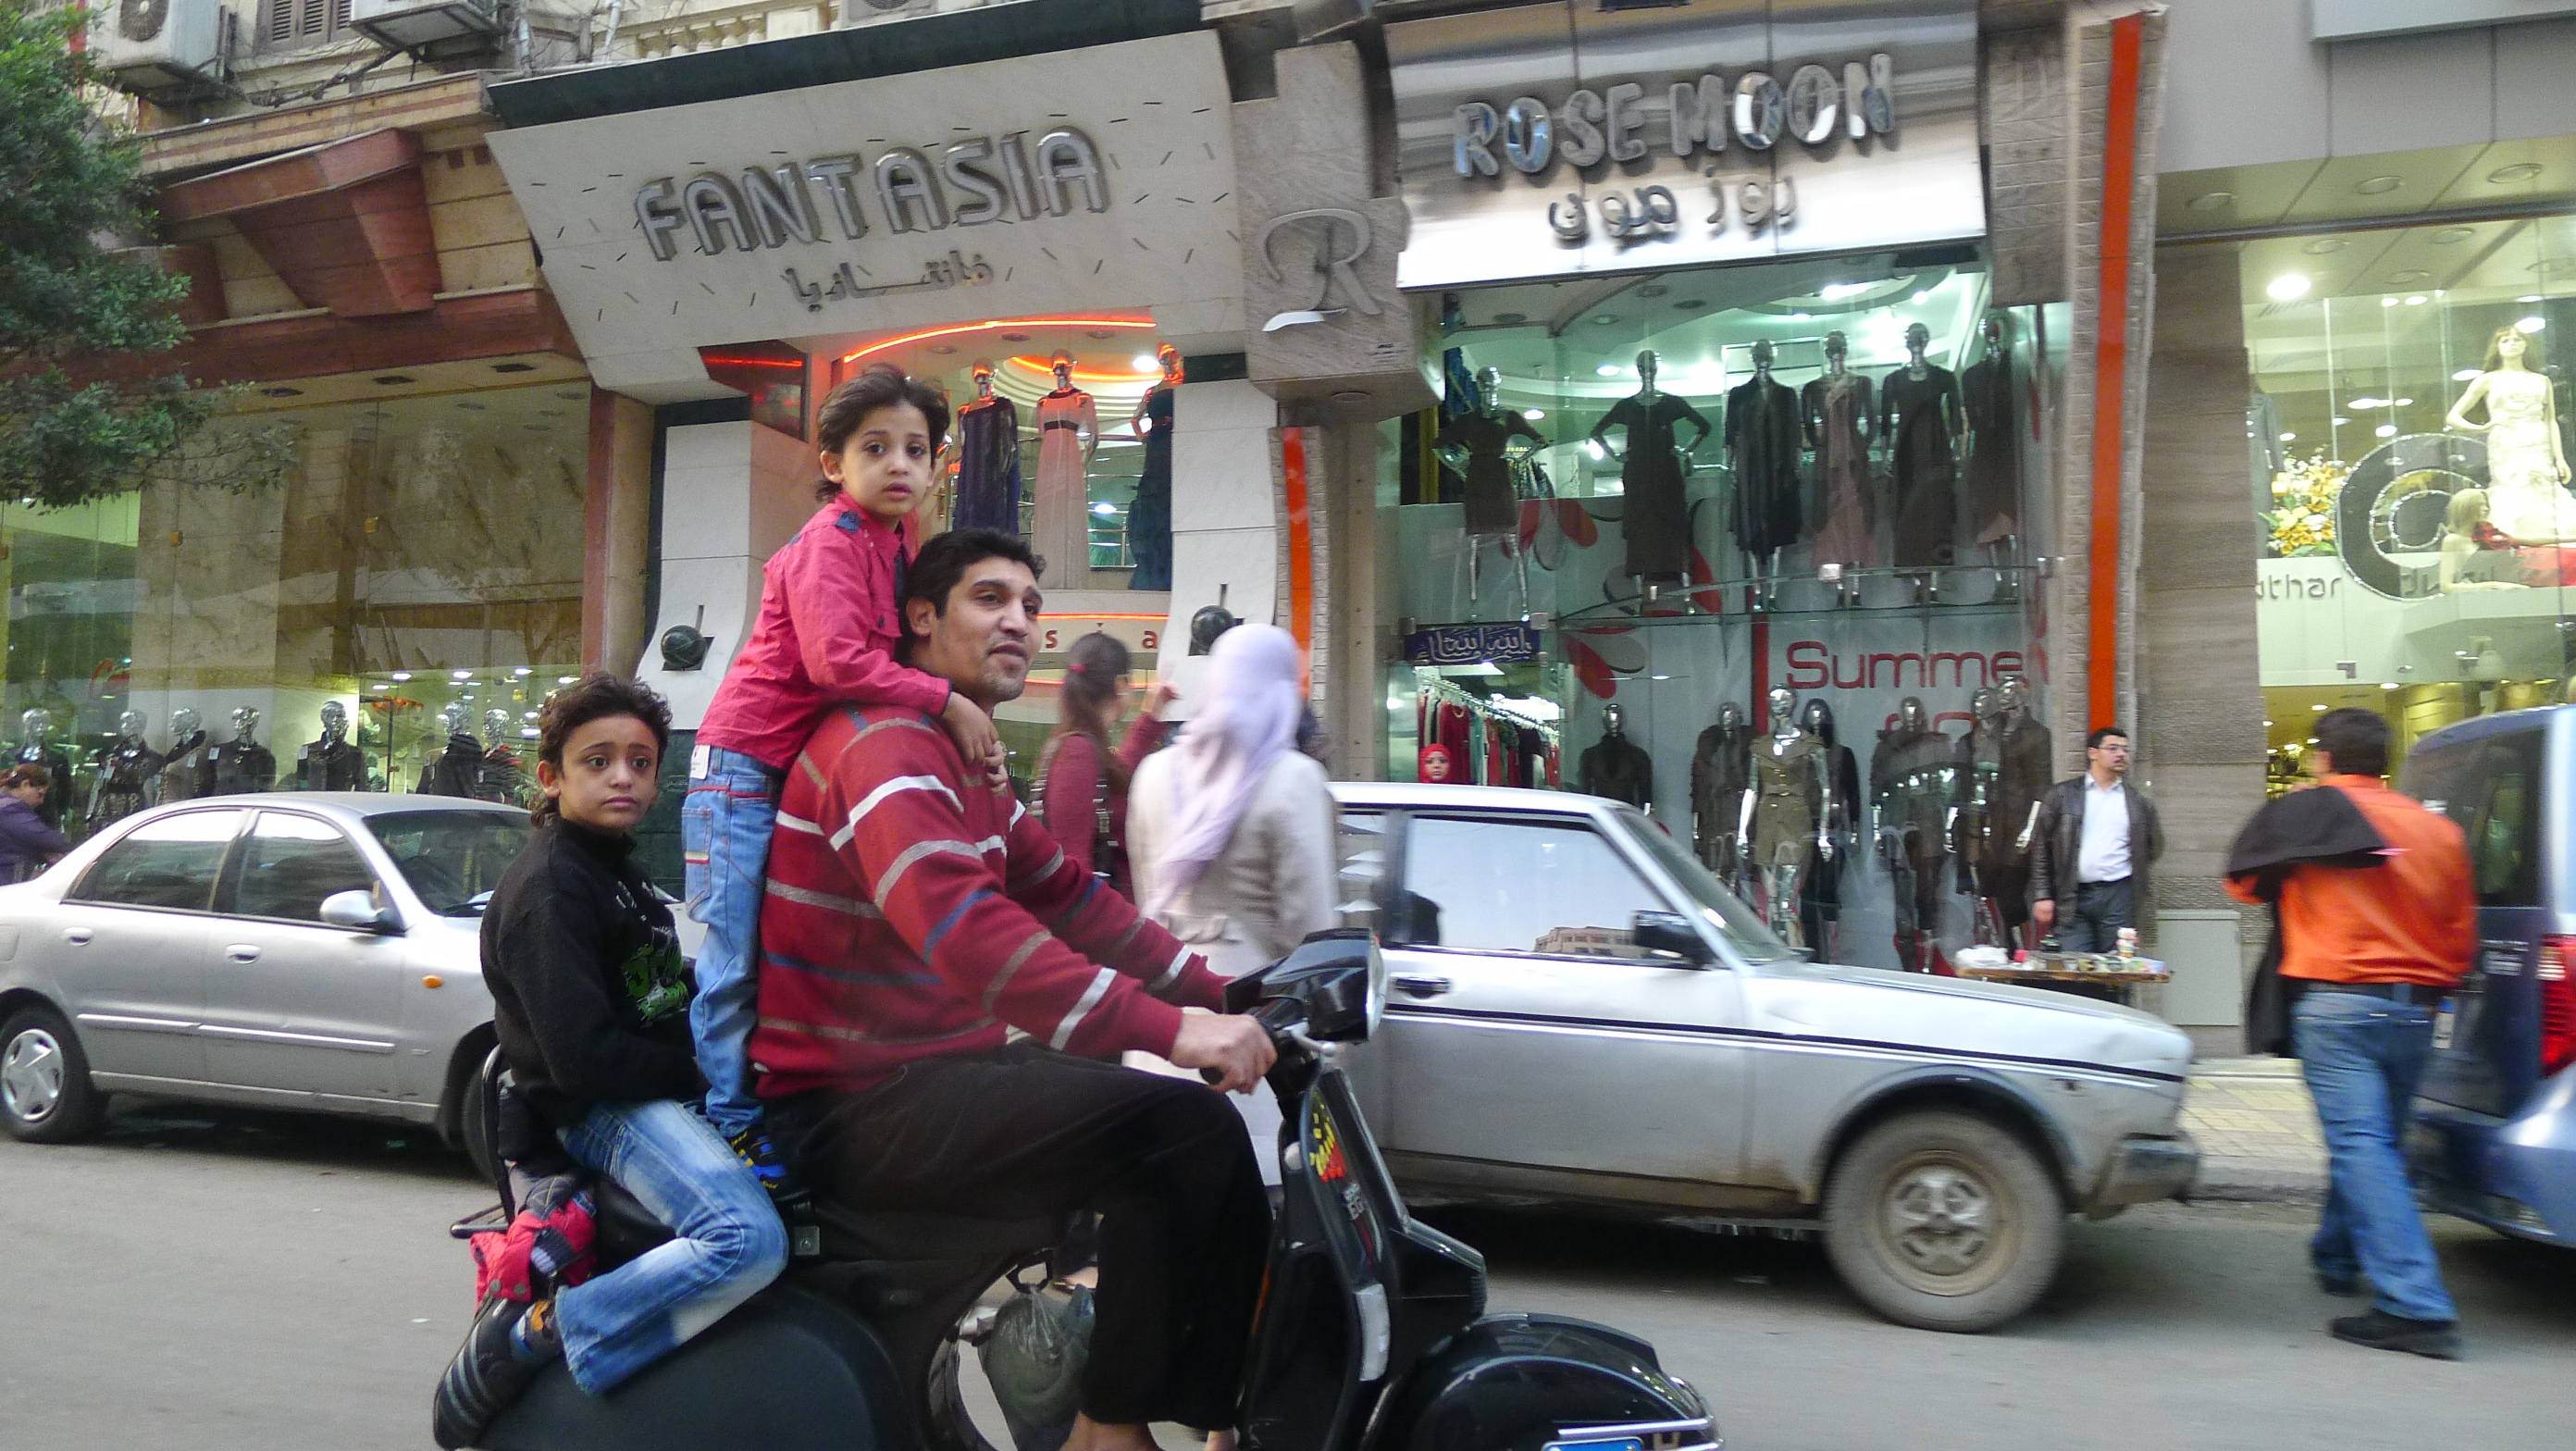 Fellow bikers in Cairo